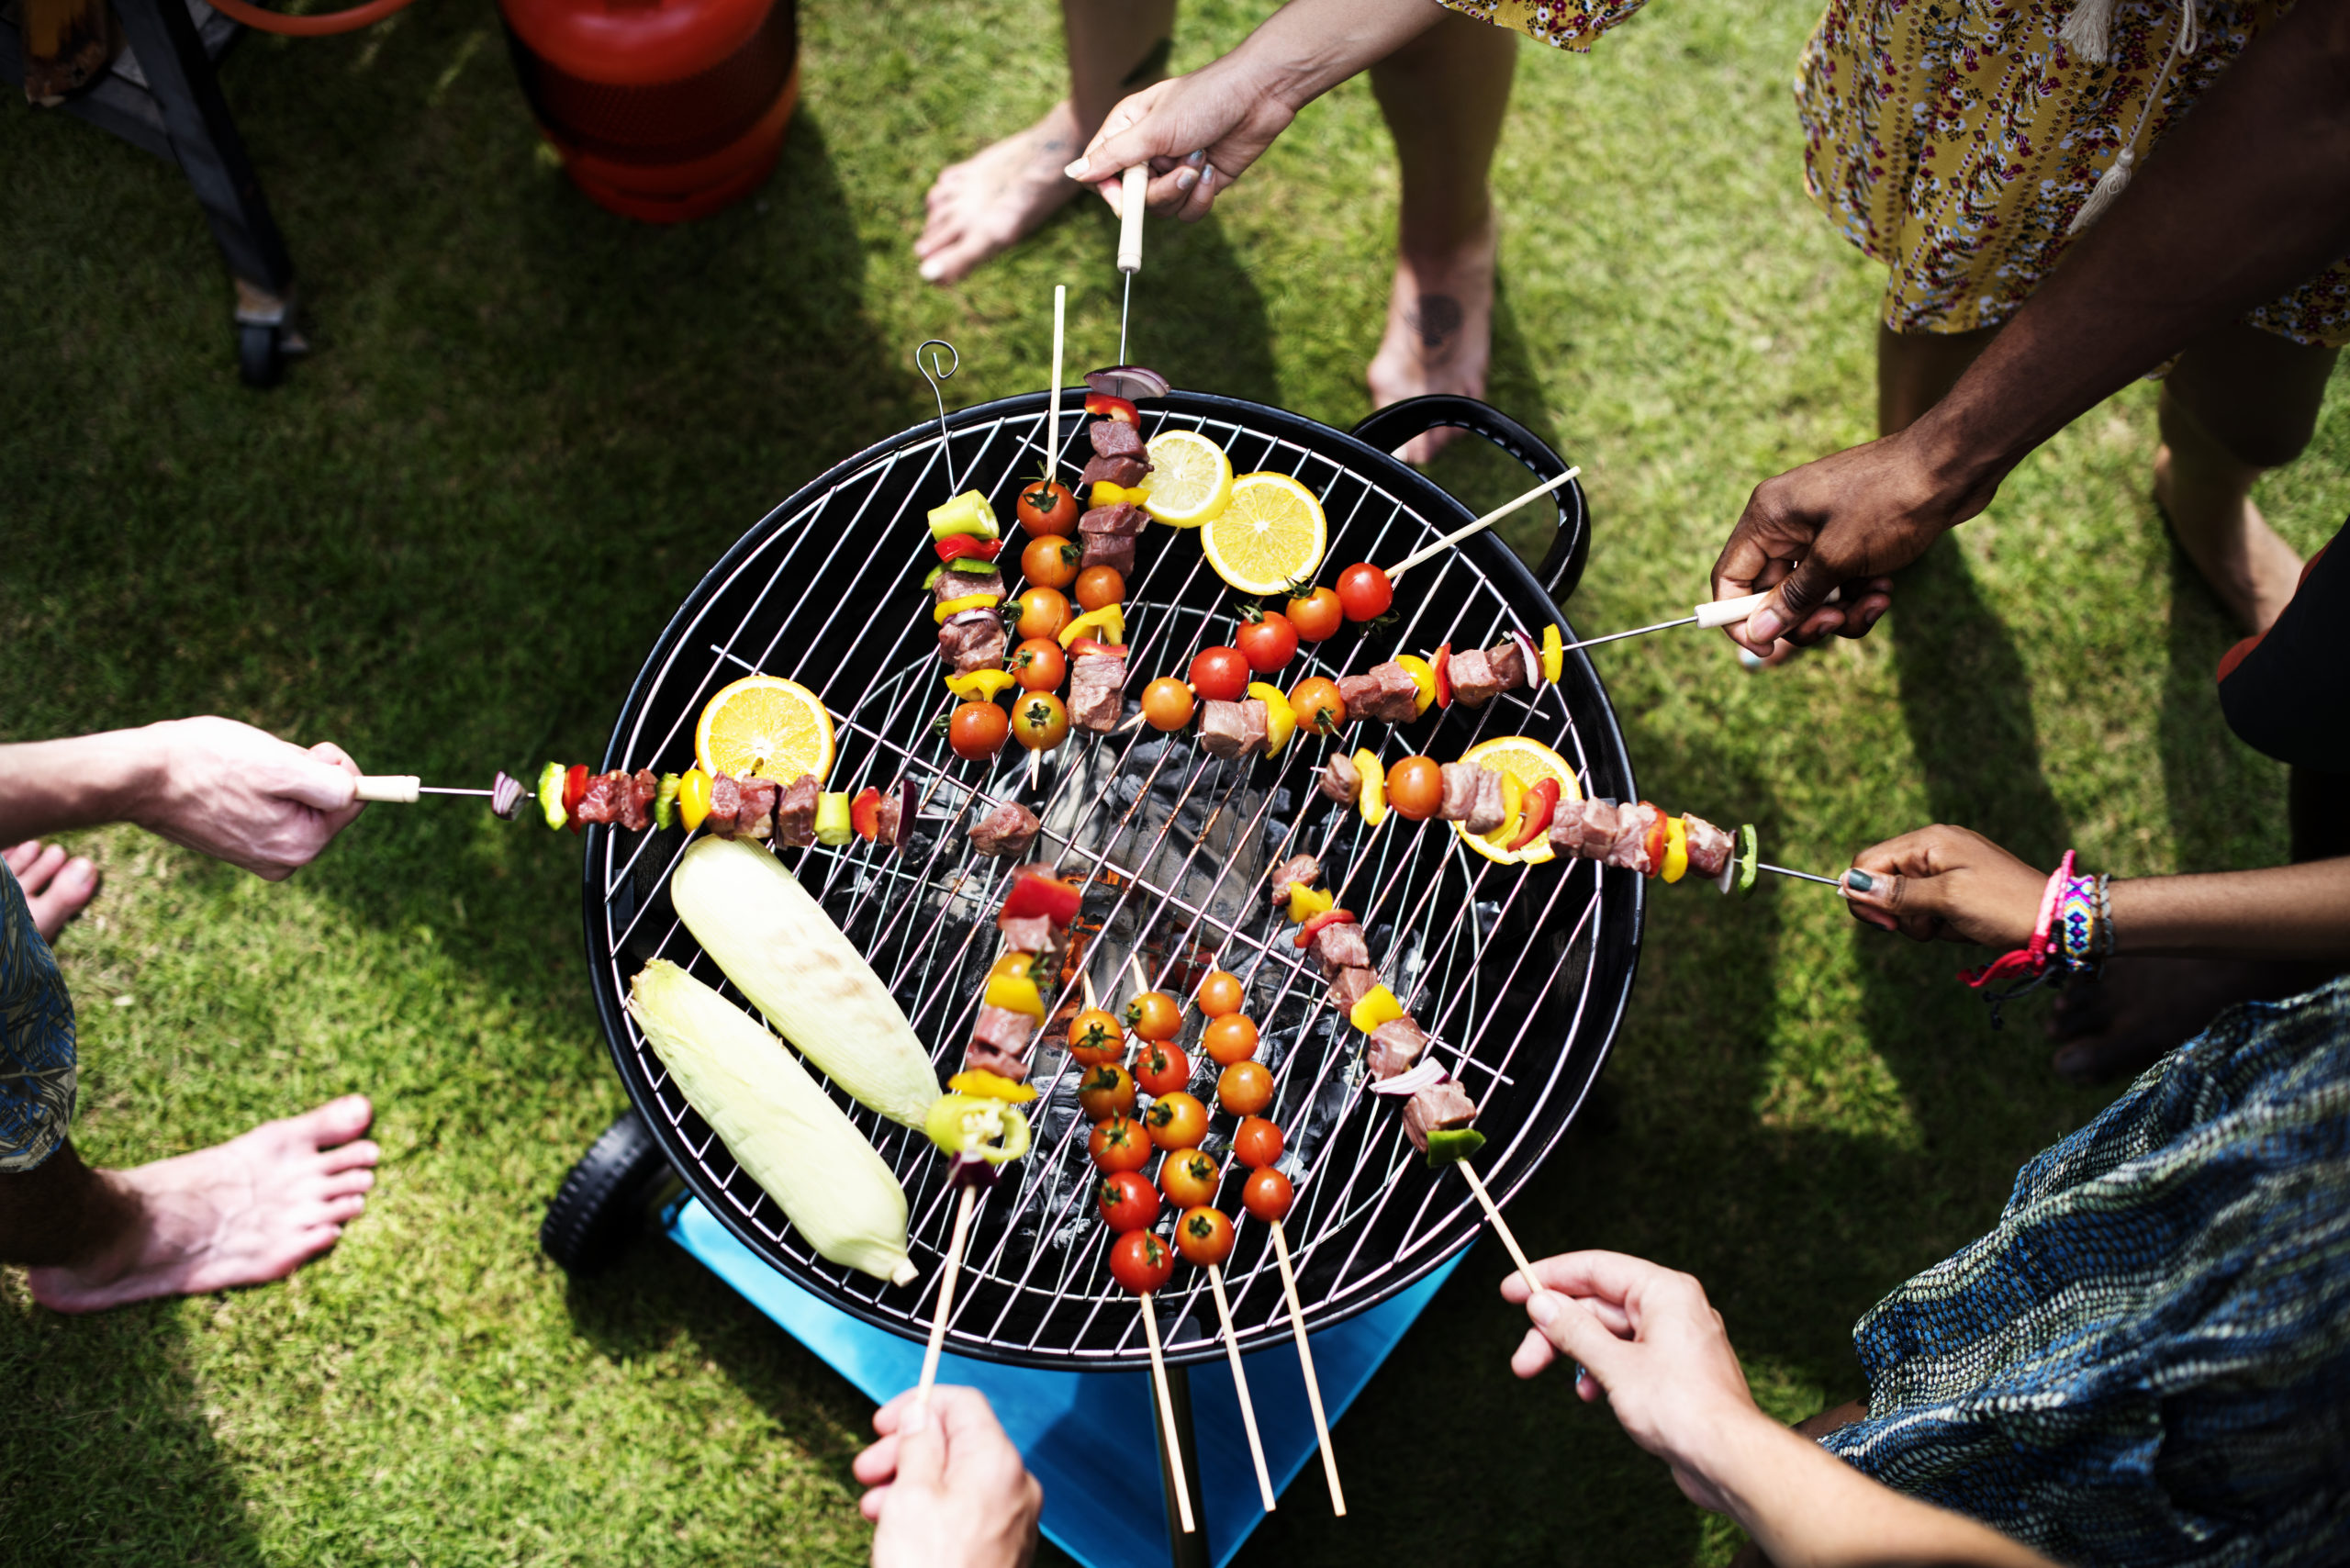 WEEKEND PENTECOTE BARBECUE PARTY GRILLADES